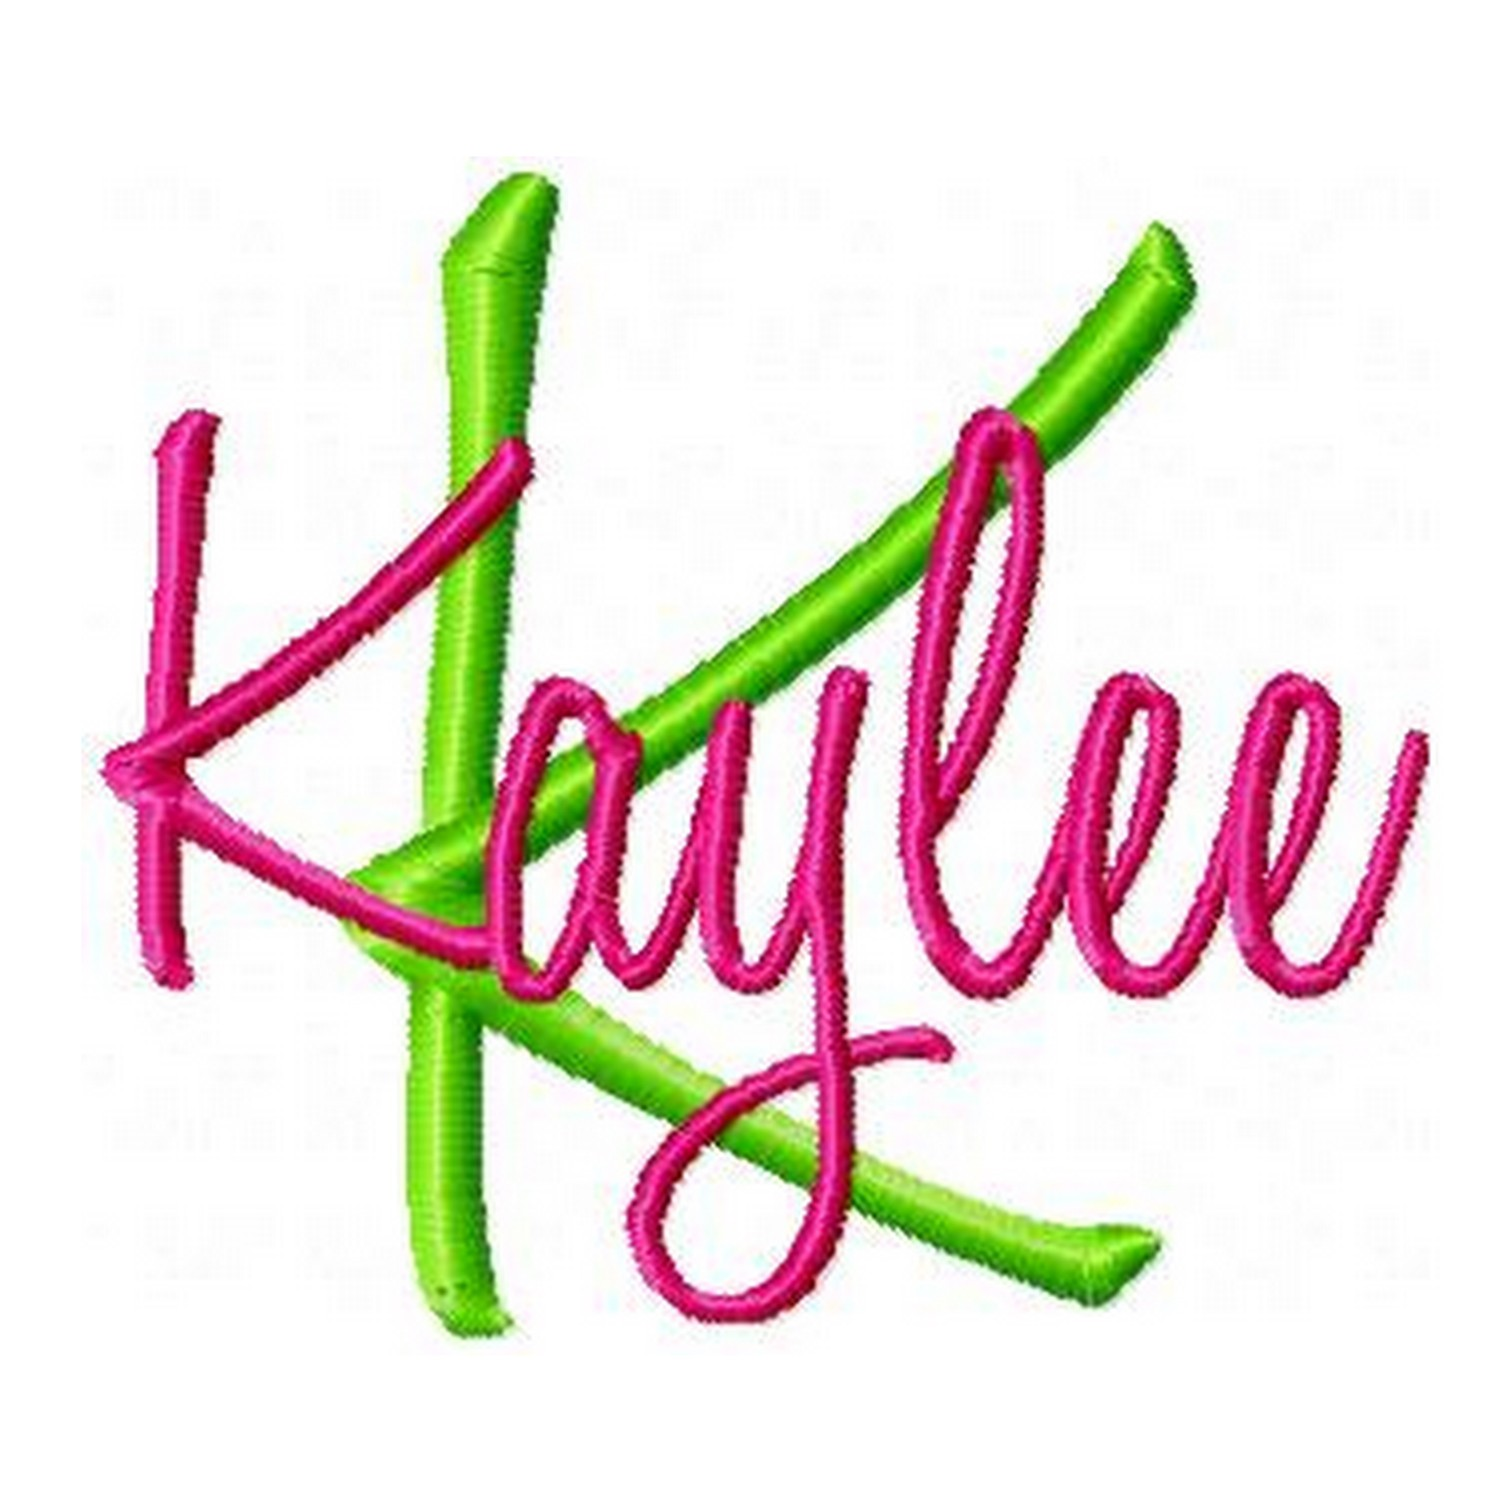 14 Kaylee Embroidery Font Images